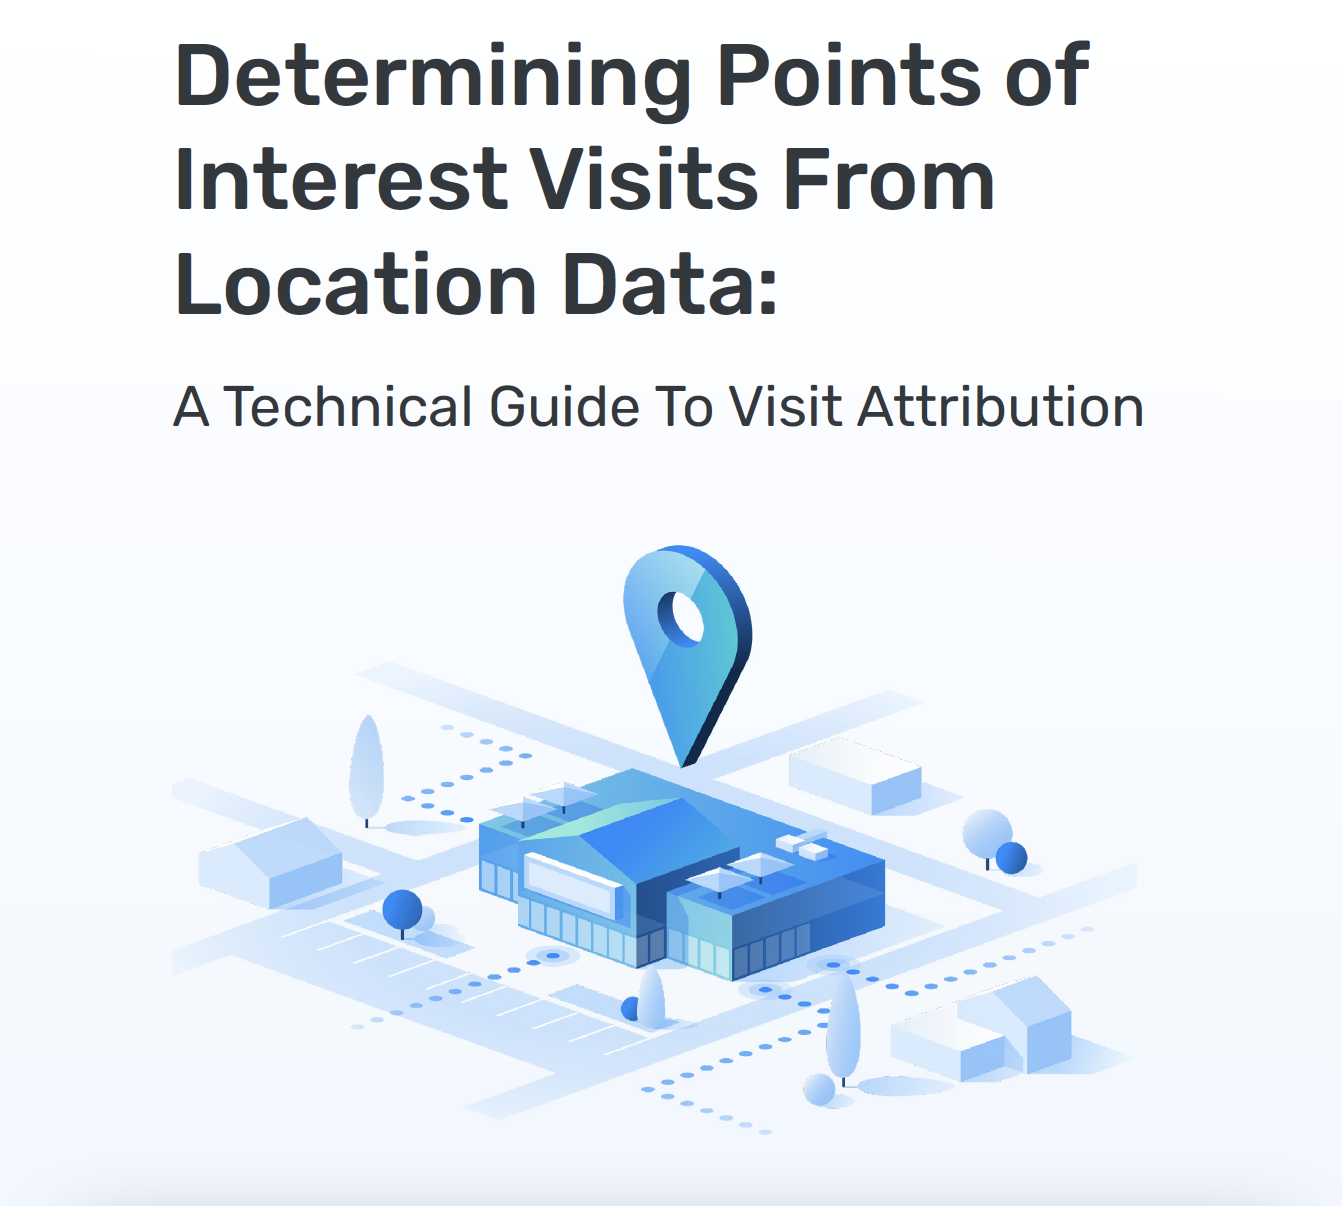 A Technical Guide to Visit Attribution